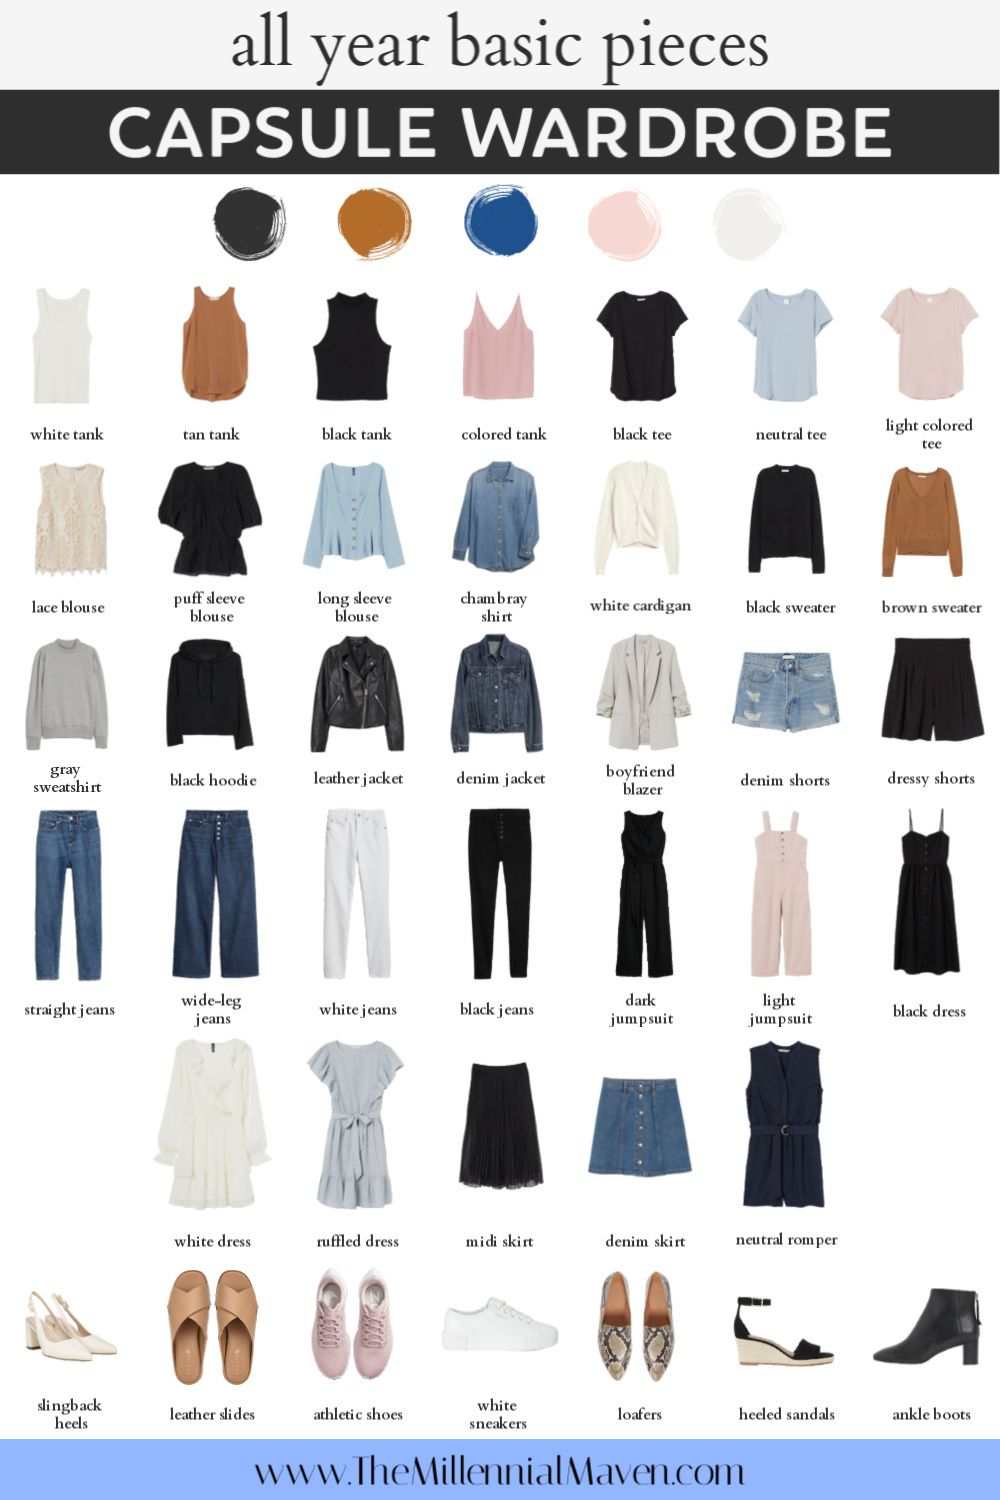 Photo of Capsule Wardrobe Theory | create a capsule wardrobe w/ all year basics